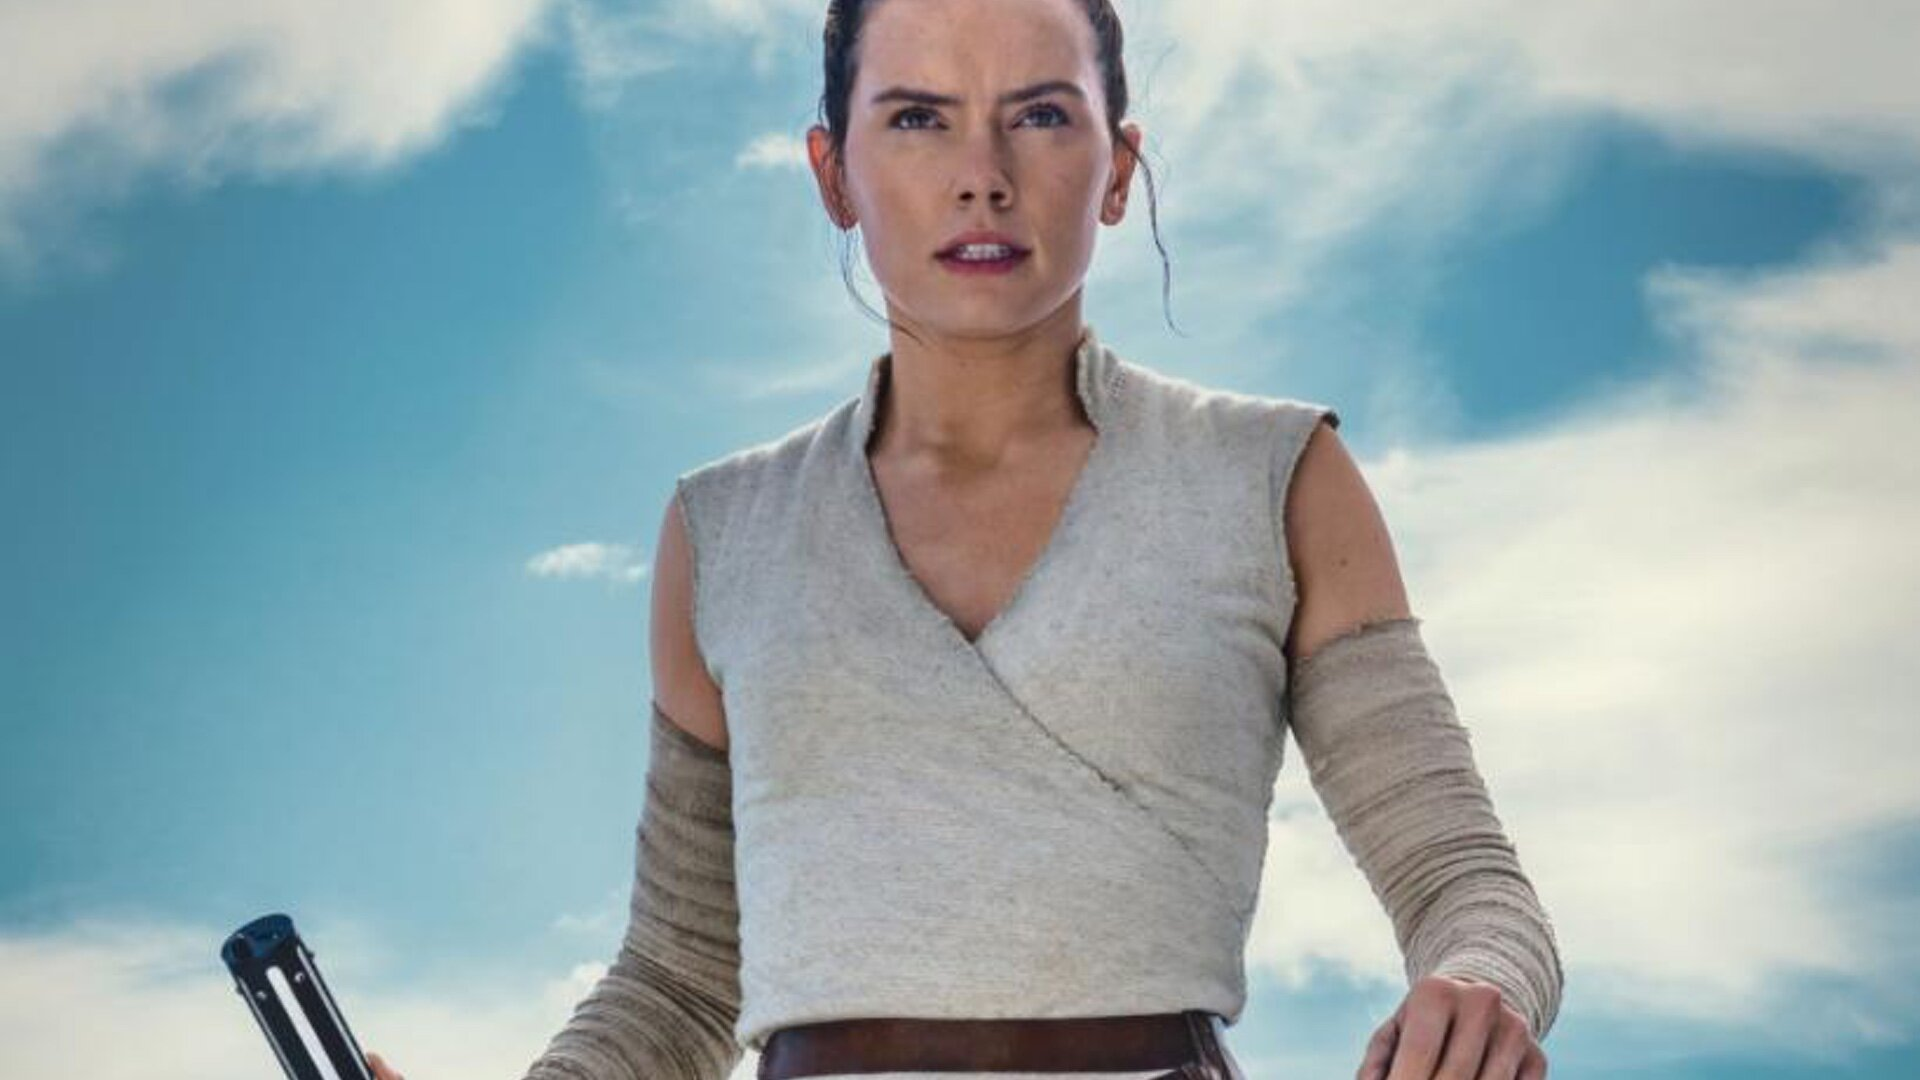 Daisy Ridley S Rey Featured In New Photo From Star Wars The Rise Of Skywalker Geektyrant